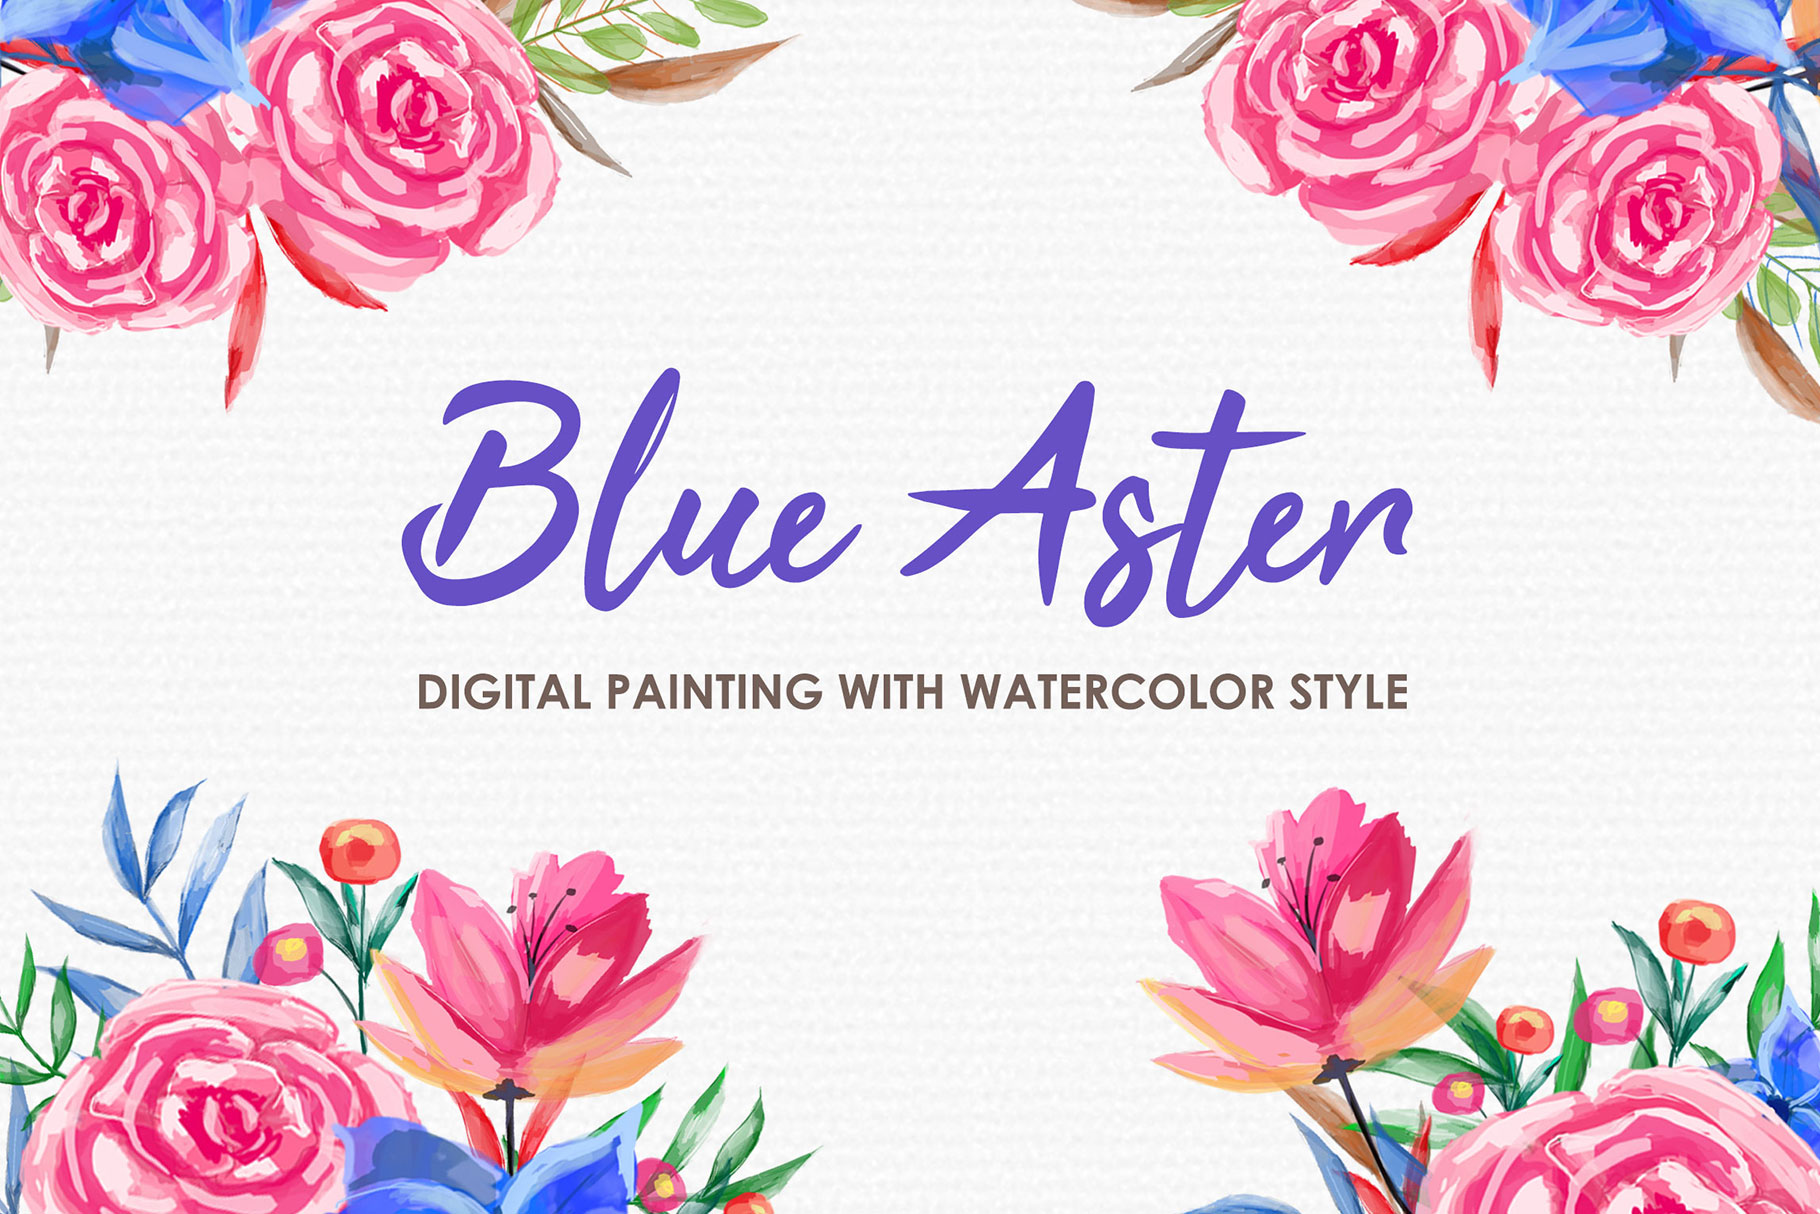 Blue Aster - Digital Watercolor Floral Flower Style Clipart example image 1